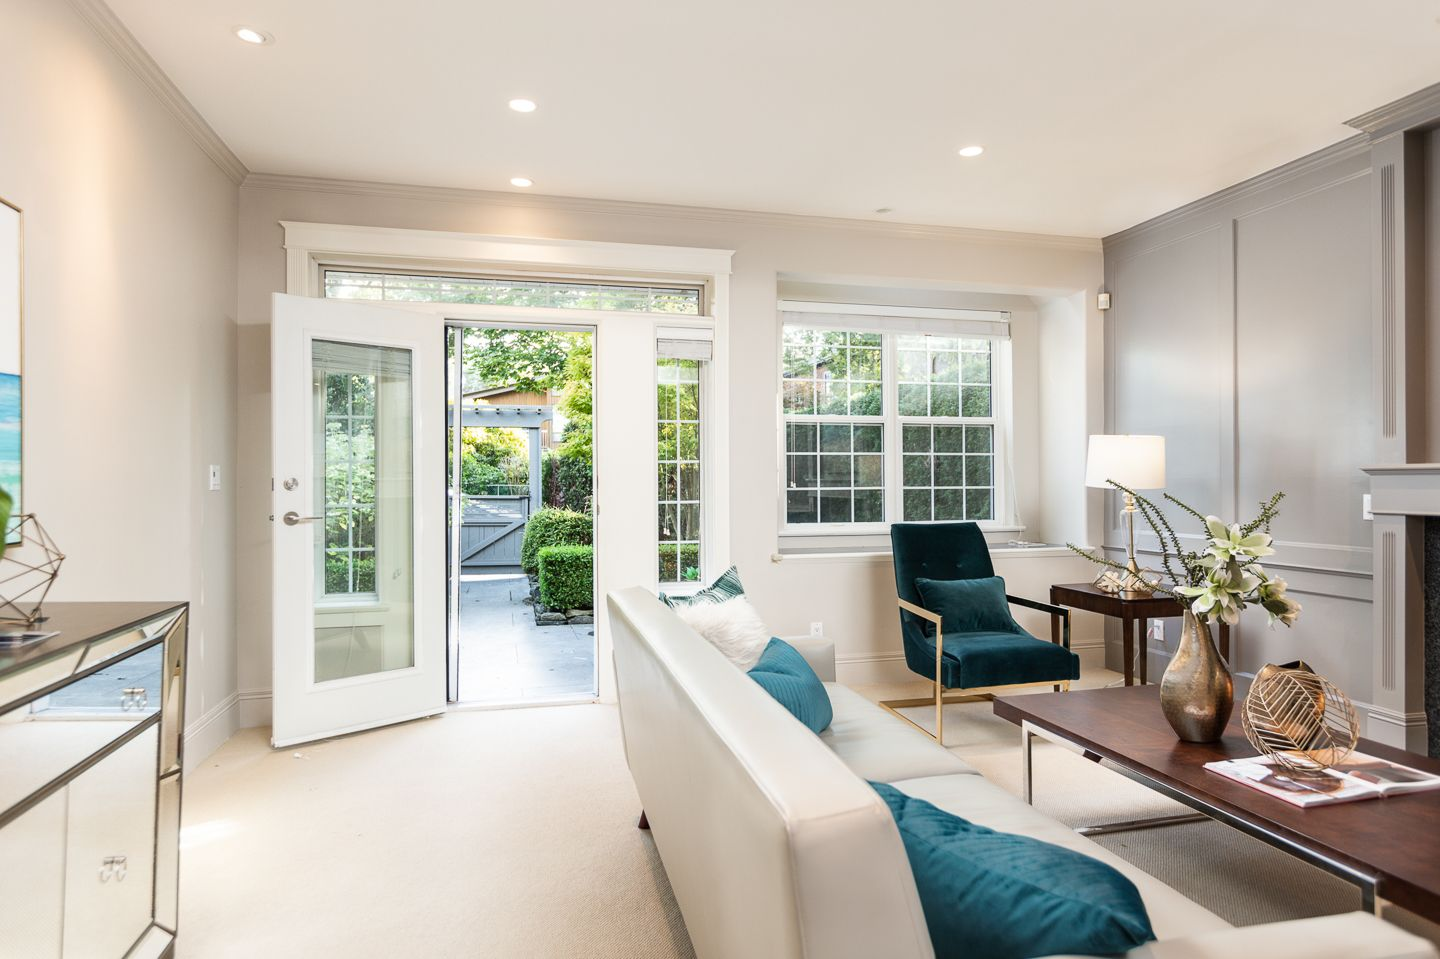 Photo 3: Photos: 2267 WEST 13TH AV in VANCOUVER: Kitsilano 1/2 Duplex for sale (Vancouver West)  : MLS®# R2407976